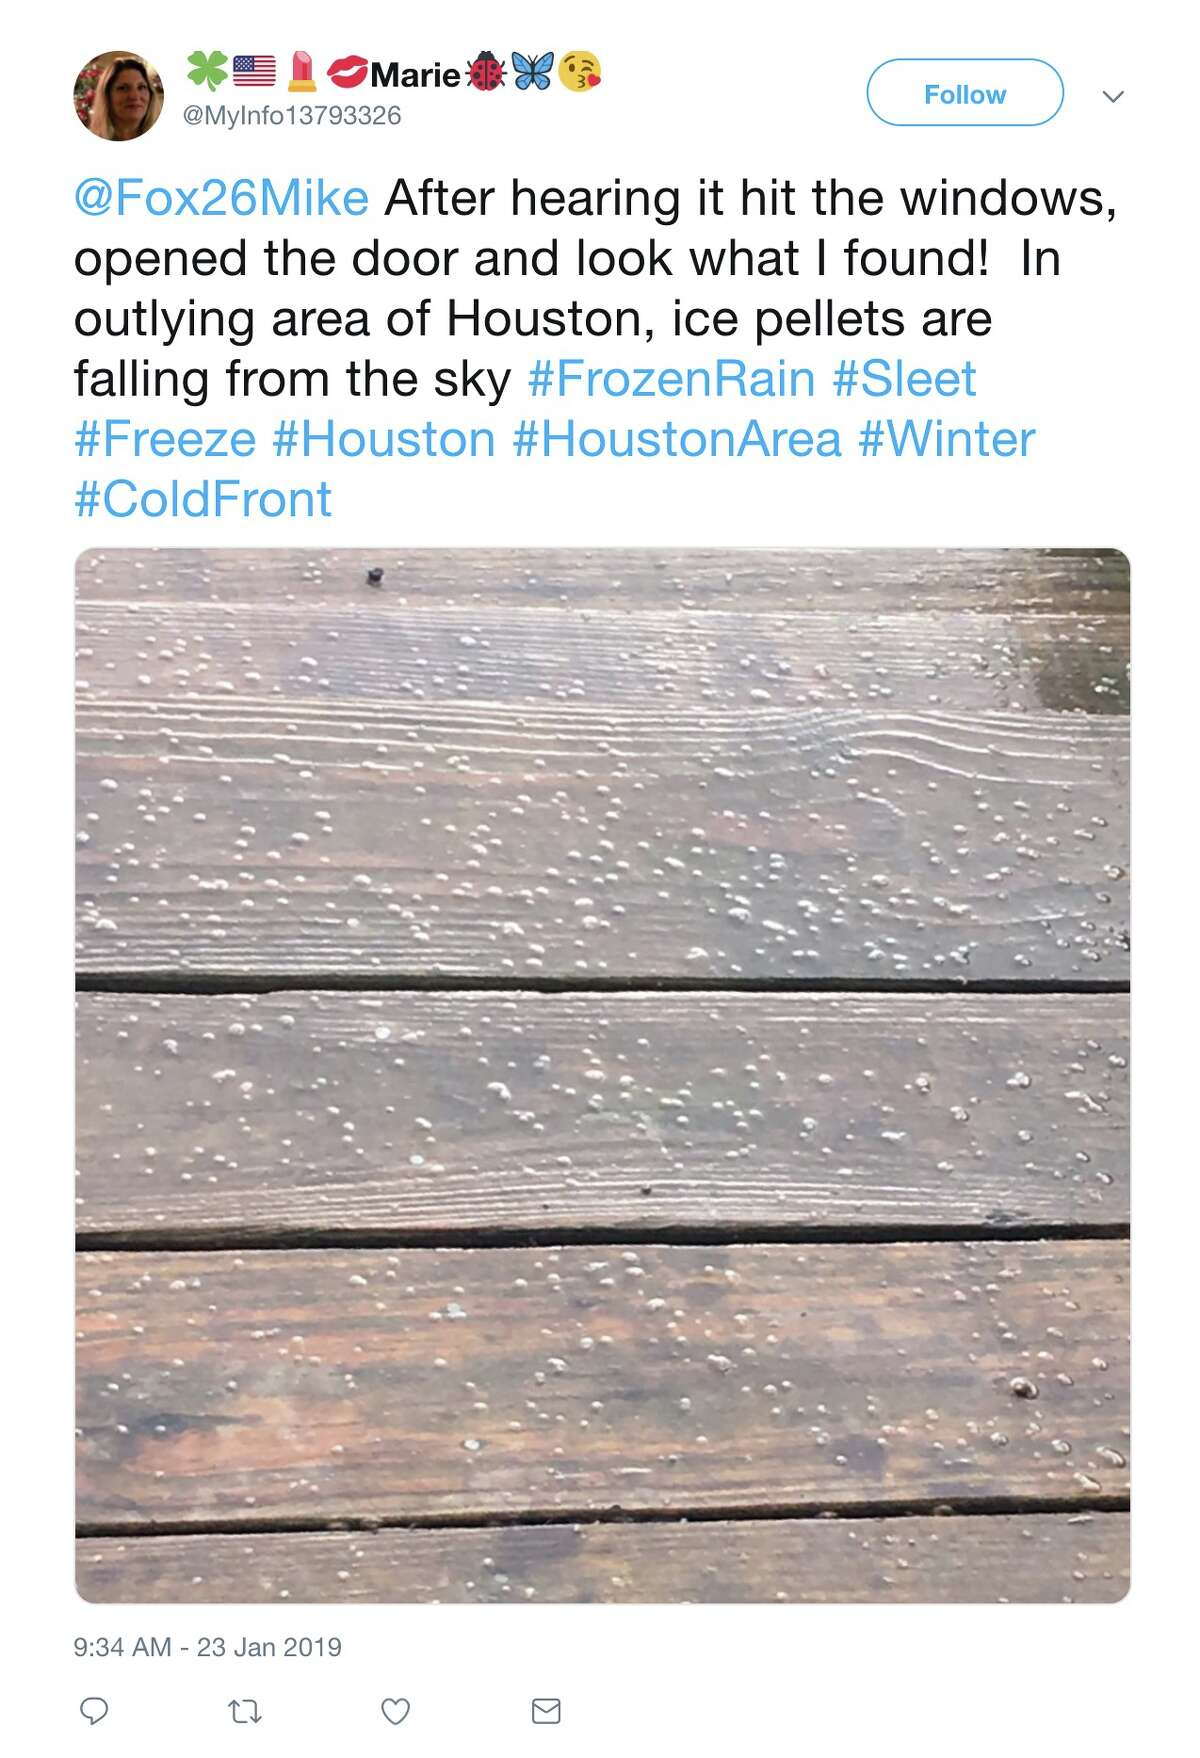 @MyInfo13793326 on Twitter: @Fox26Mike After hearing it hit the windows, opened the door and look what I found! In outlying area of Houston, ice pellets are falling from the sky #FrozenRain #Sleet #Freeze #Houston #HoustonArea #Winter #ColdFront